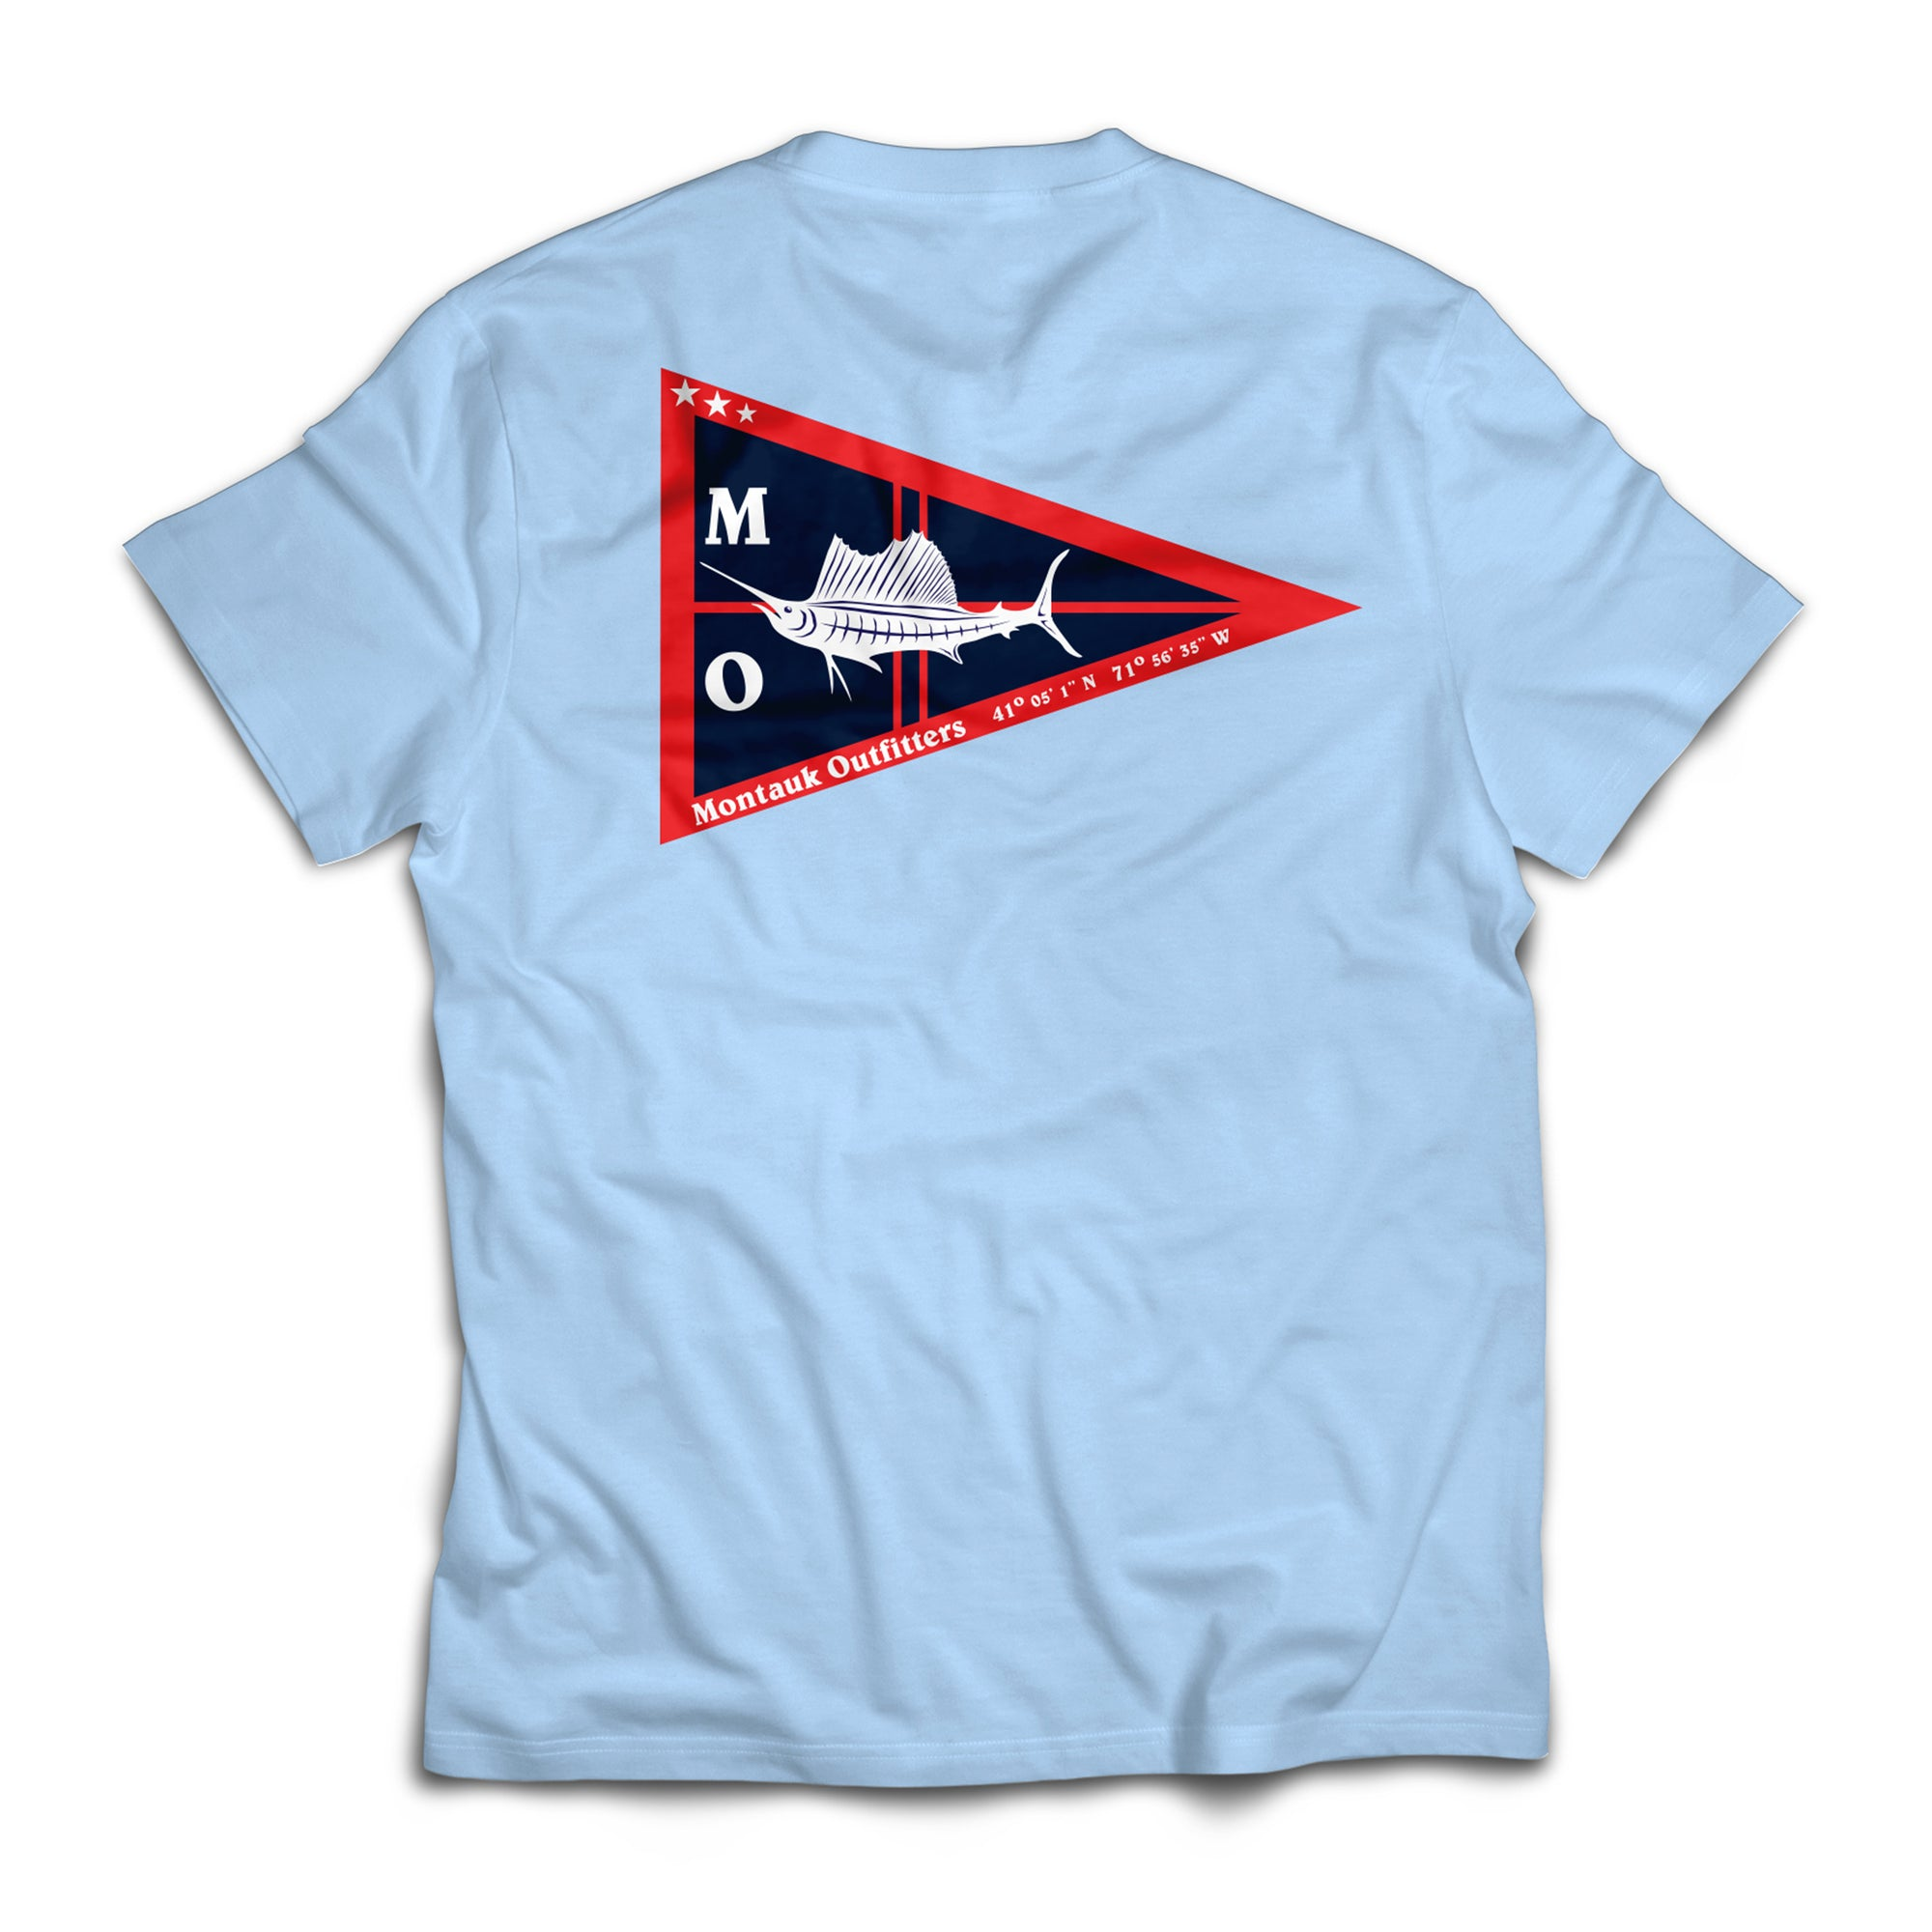 Burgee Flag T-Shirt